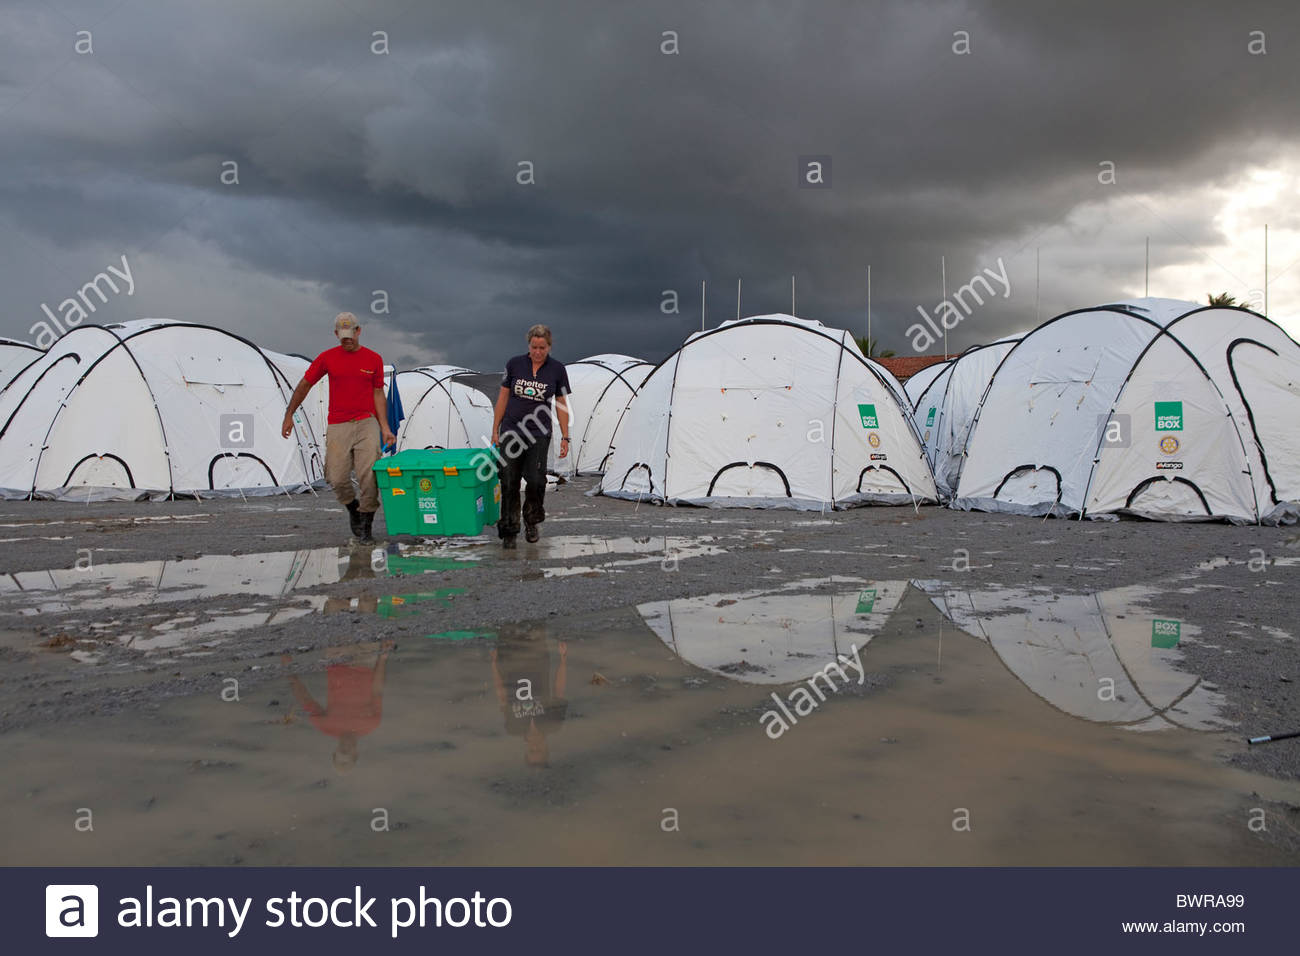 Shelterbox camp at Uniao Dos Palmares, Alegoas, Brazil - Stock Image